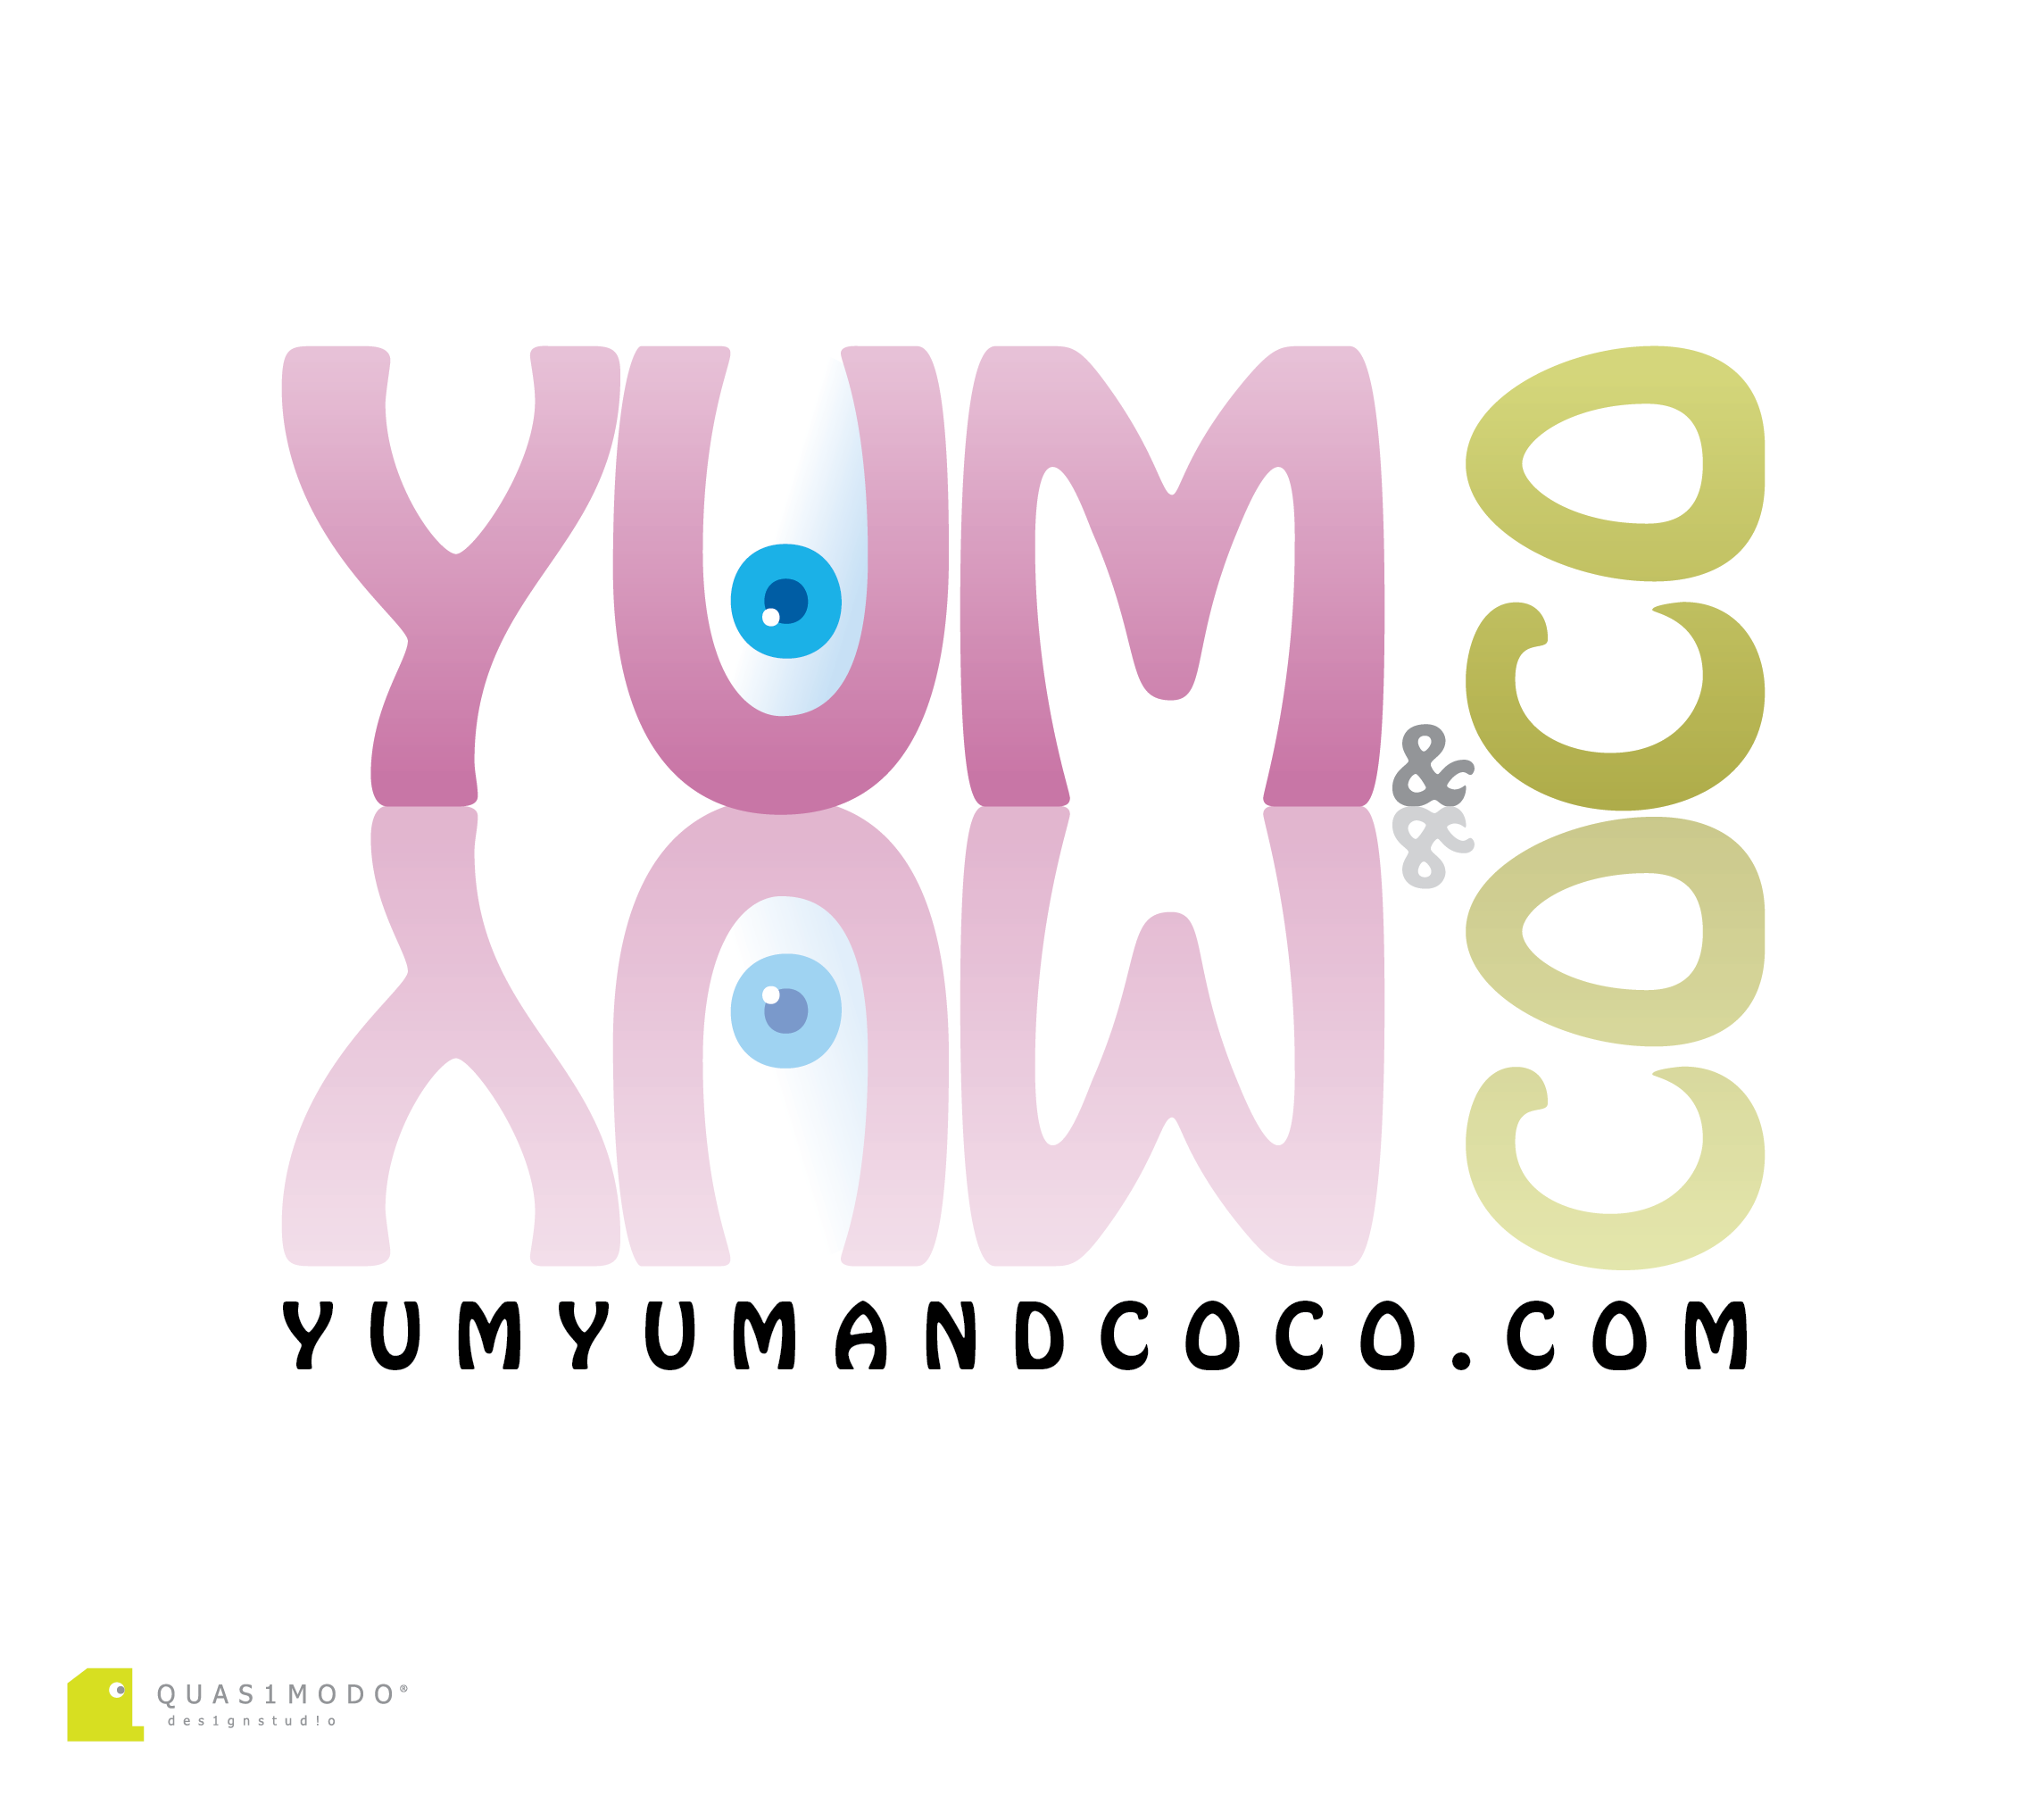 Logo Design by DIMITRIOS PAPADOPOULOS - Entry No. 178 in the Logo Design Contest Logo Design for YumYum & CoCo.